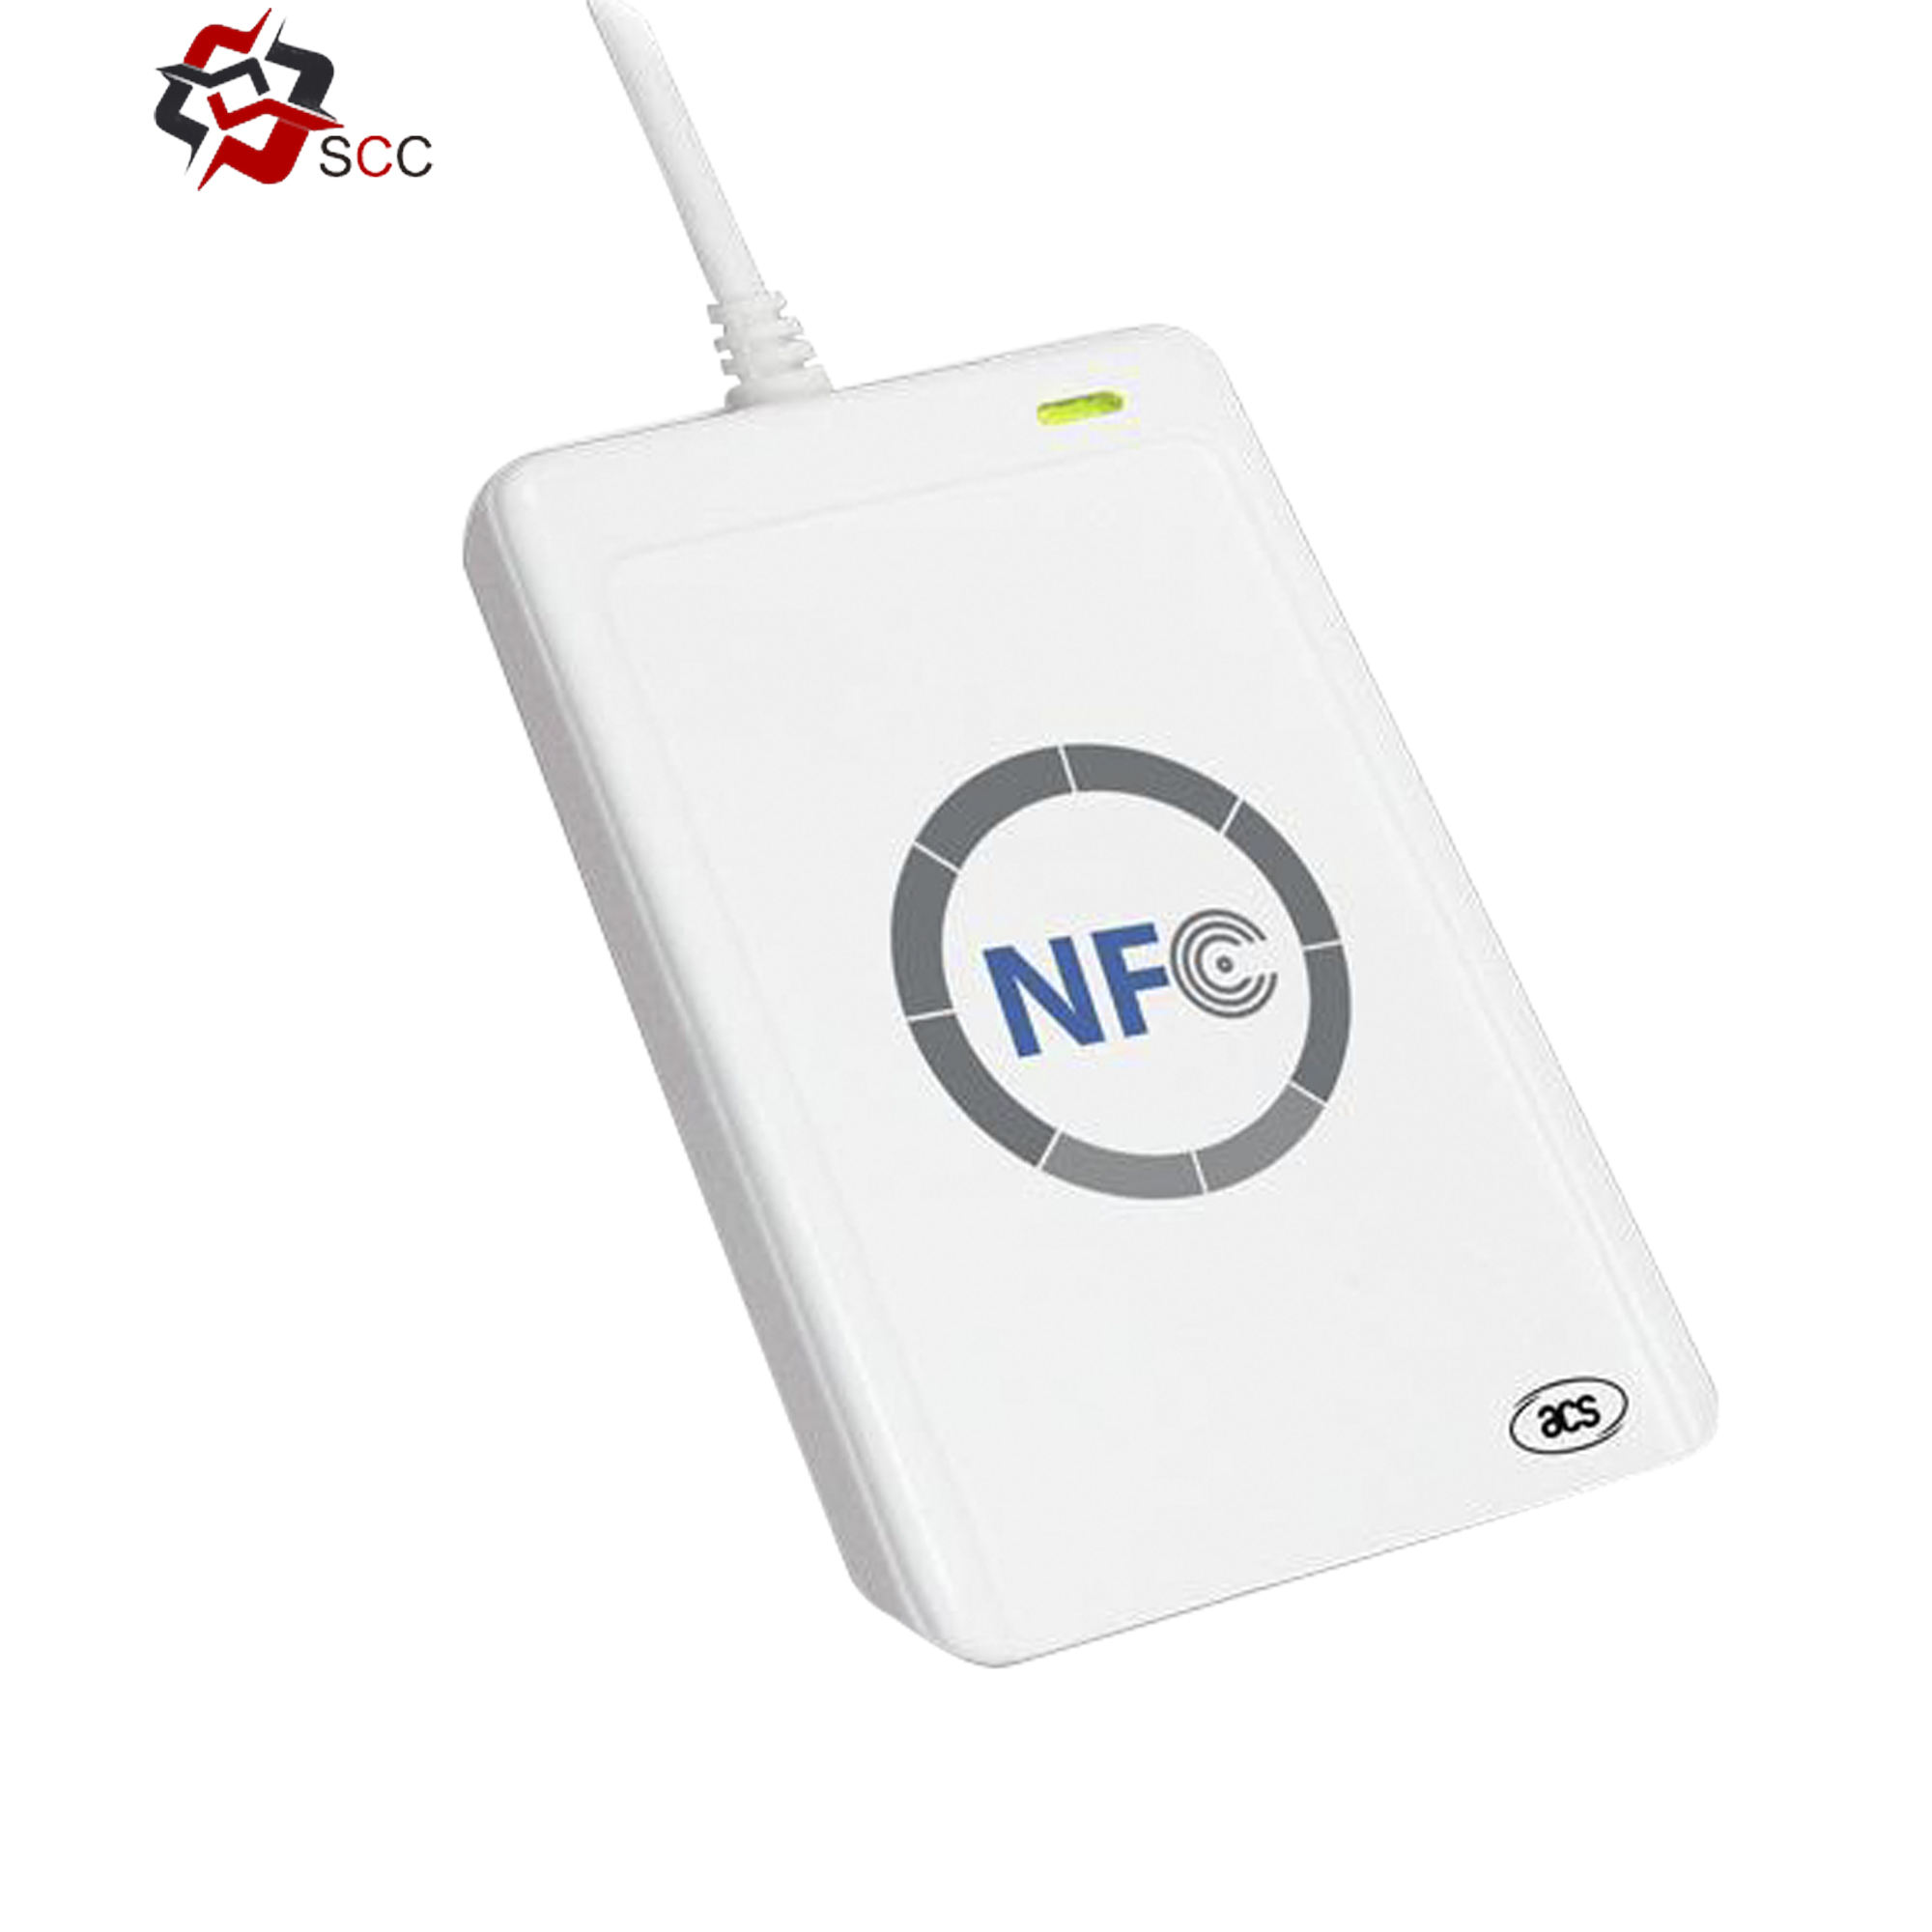 High performance 13.56 MHz USB NFC reader RFID Chip Card Writer and Reader